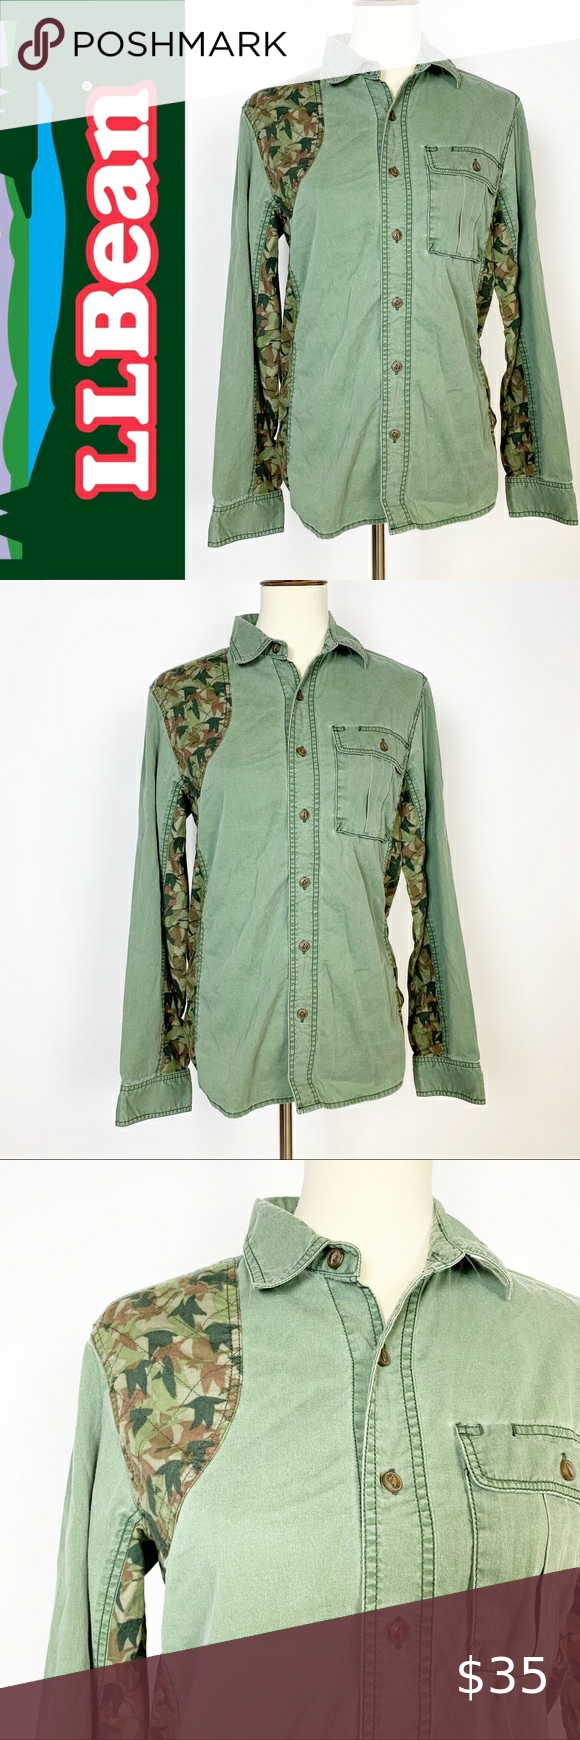 """LL BEAN Camo Accented Green Button Up SM Measurements Approximate Laying Flat-   ▫️Length: 26""""  ▫️Pit to Pit: 18""""  ▫️Size: Small  ▫️Condition: Excellent Preowned Condition   ▫️Materials: see photos  ▫️Color: greens  brown   ▫️Style: button up  ◻️Inventory #0707  FAST SHIPPING / SMOKE FREE HOME L.L. Bean Tops Button Down Shirts"""